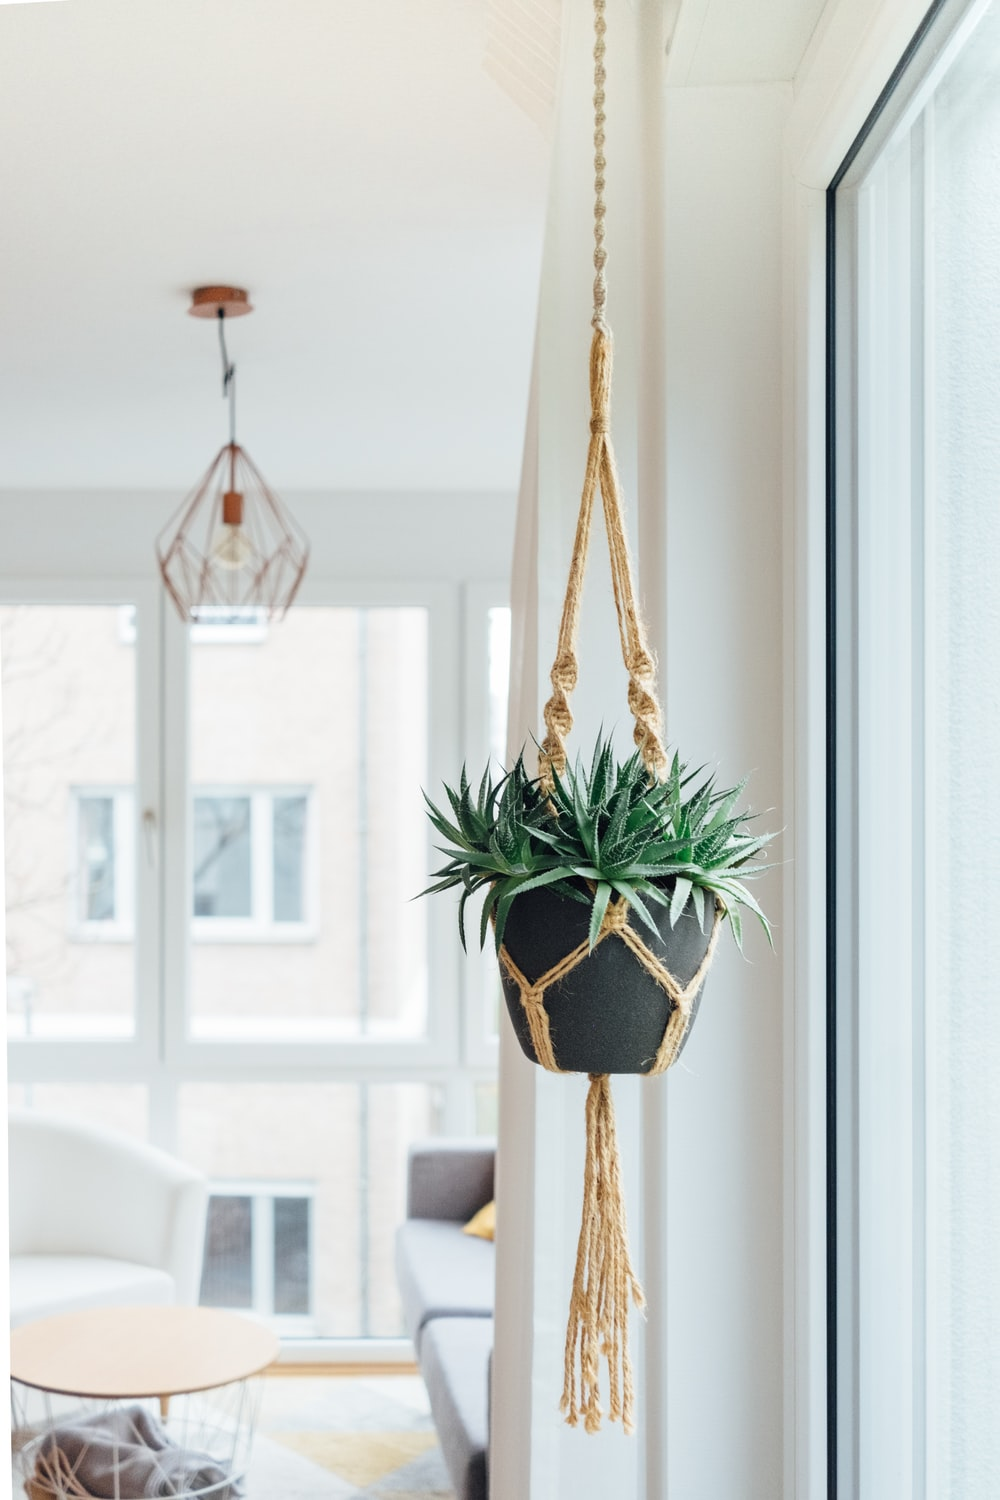 green hanging potted plant near glass window at daytime